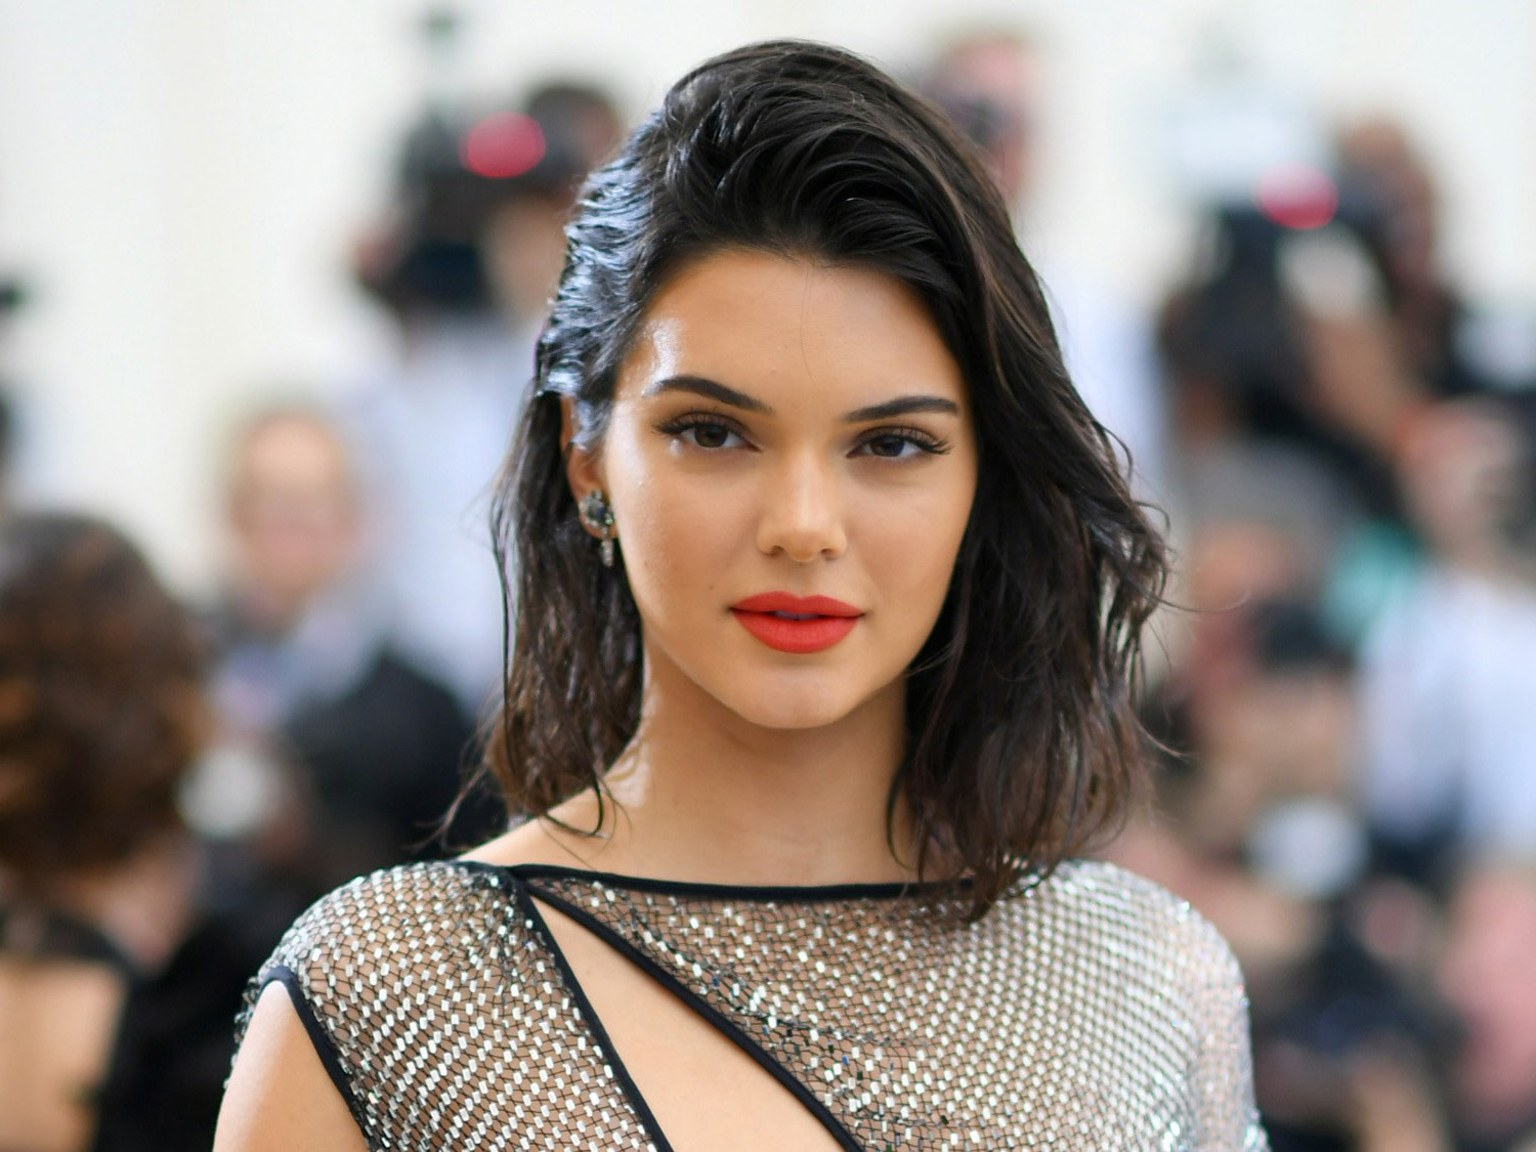 Kendal Jenner Rocks The Summer Colour In Paris